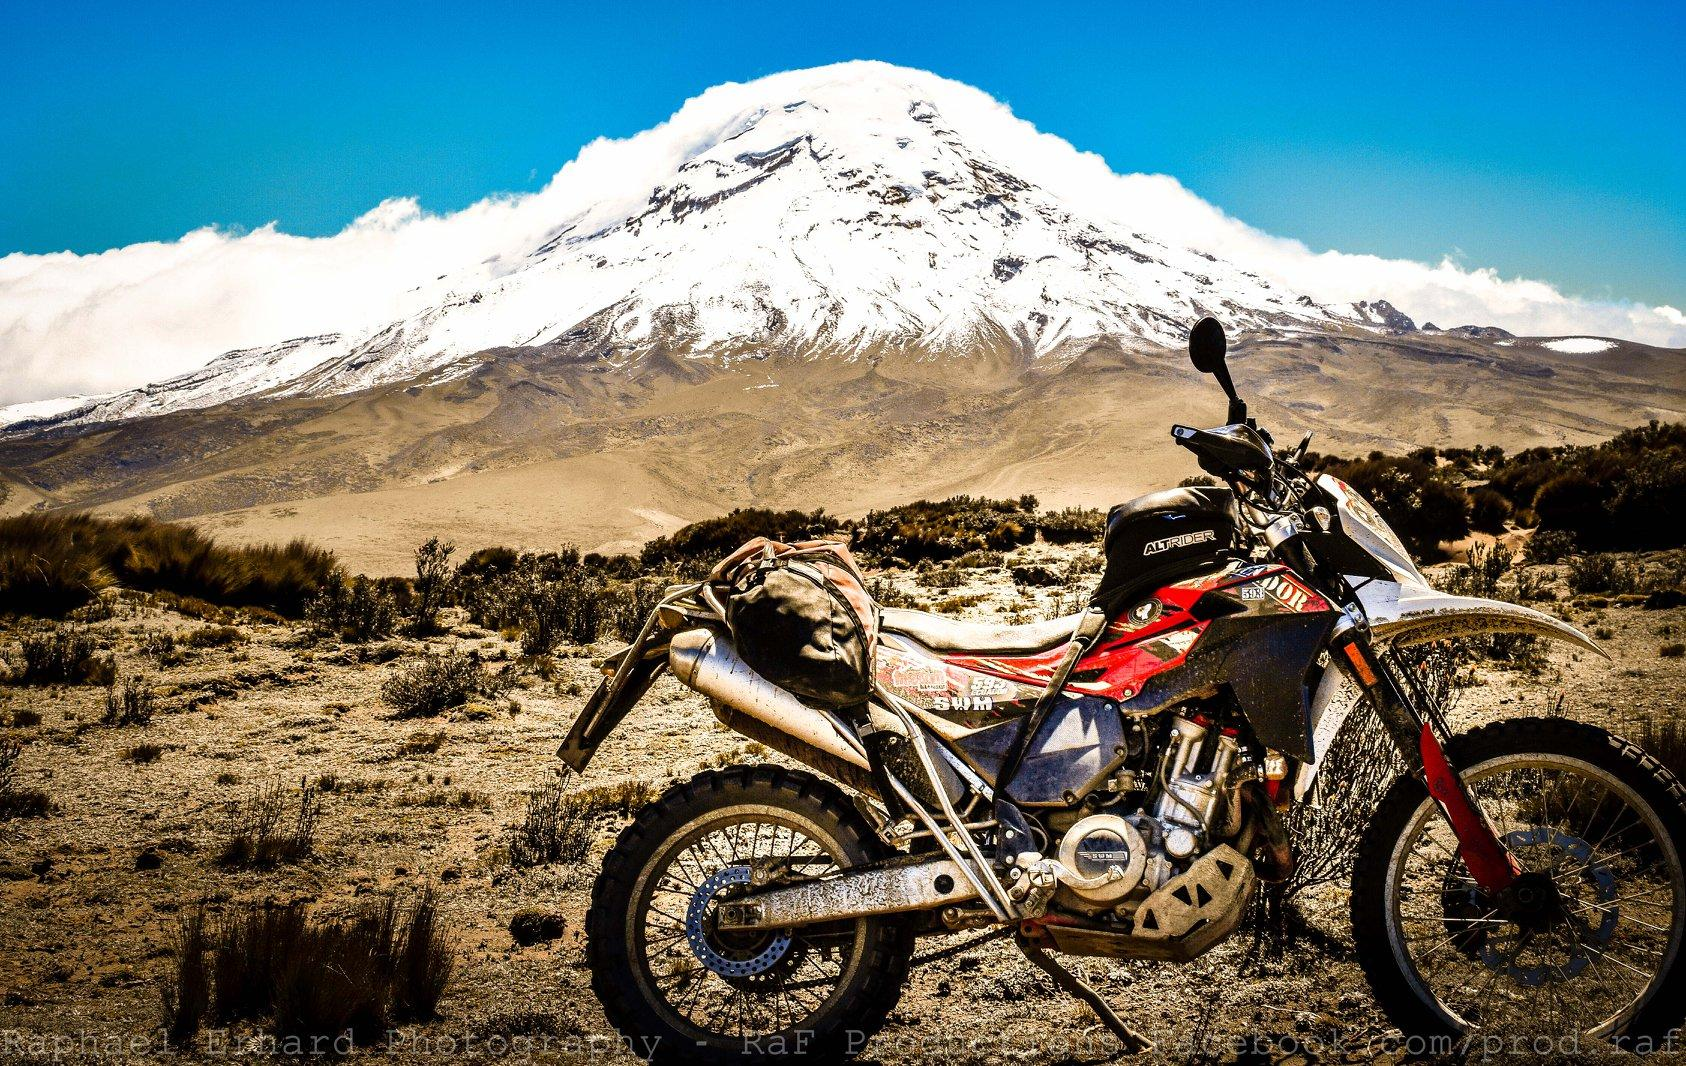 Ecuador Freedom Bike Rental Adds SWM Motorcycles to its Adventure-Ready Fleet